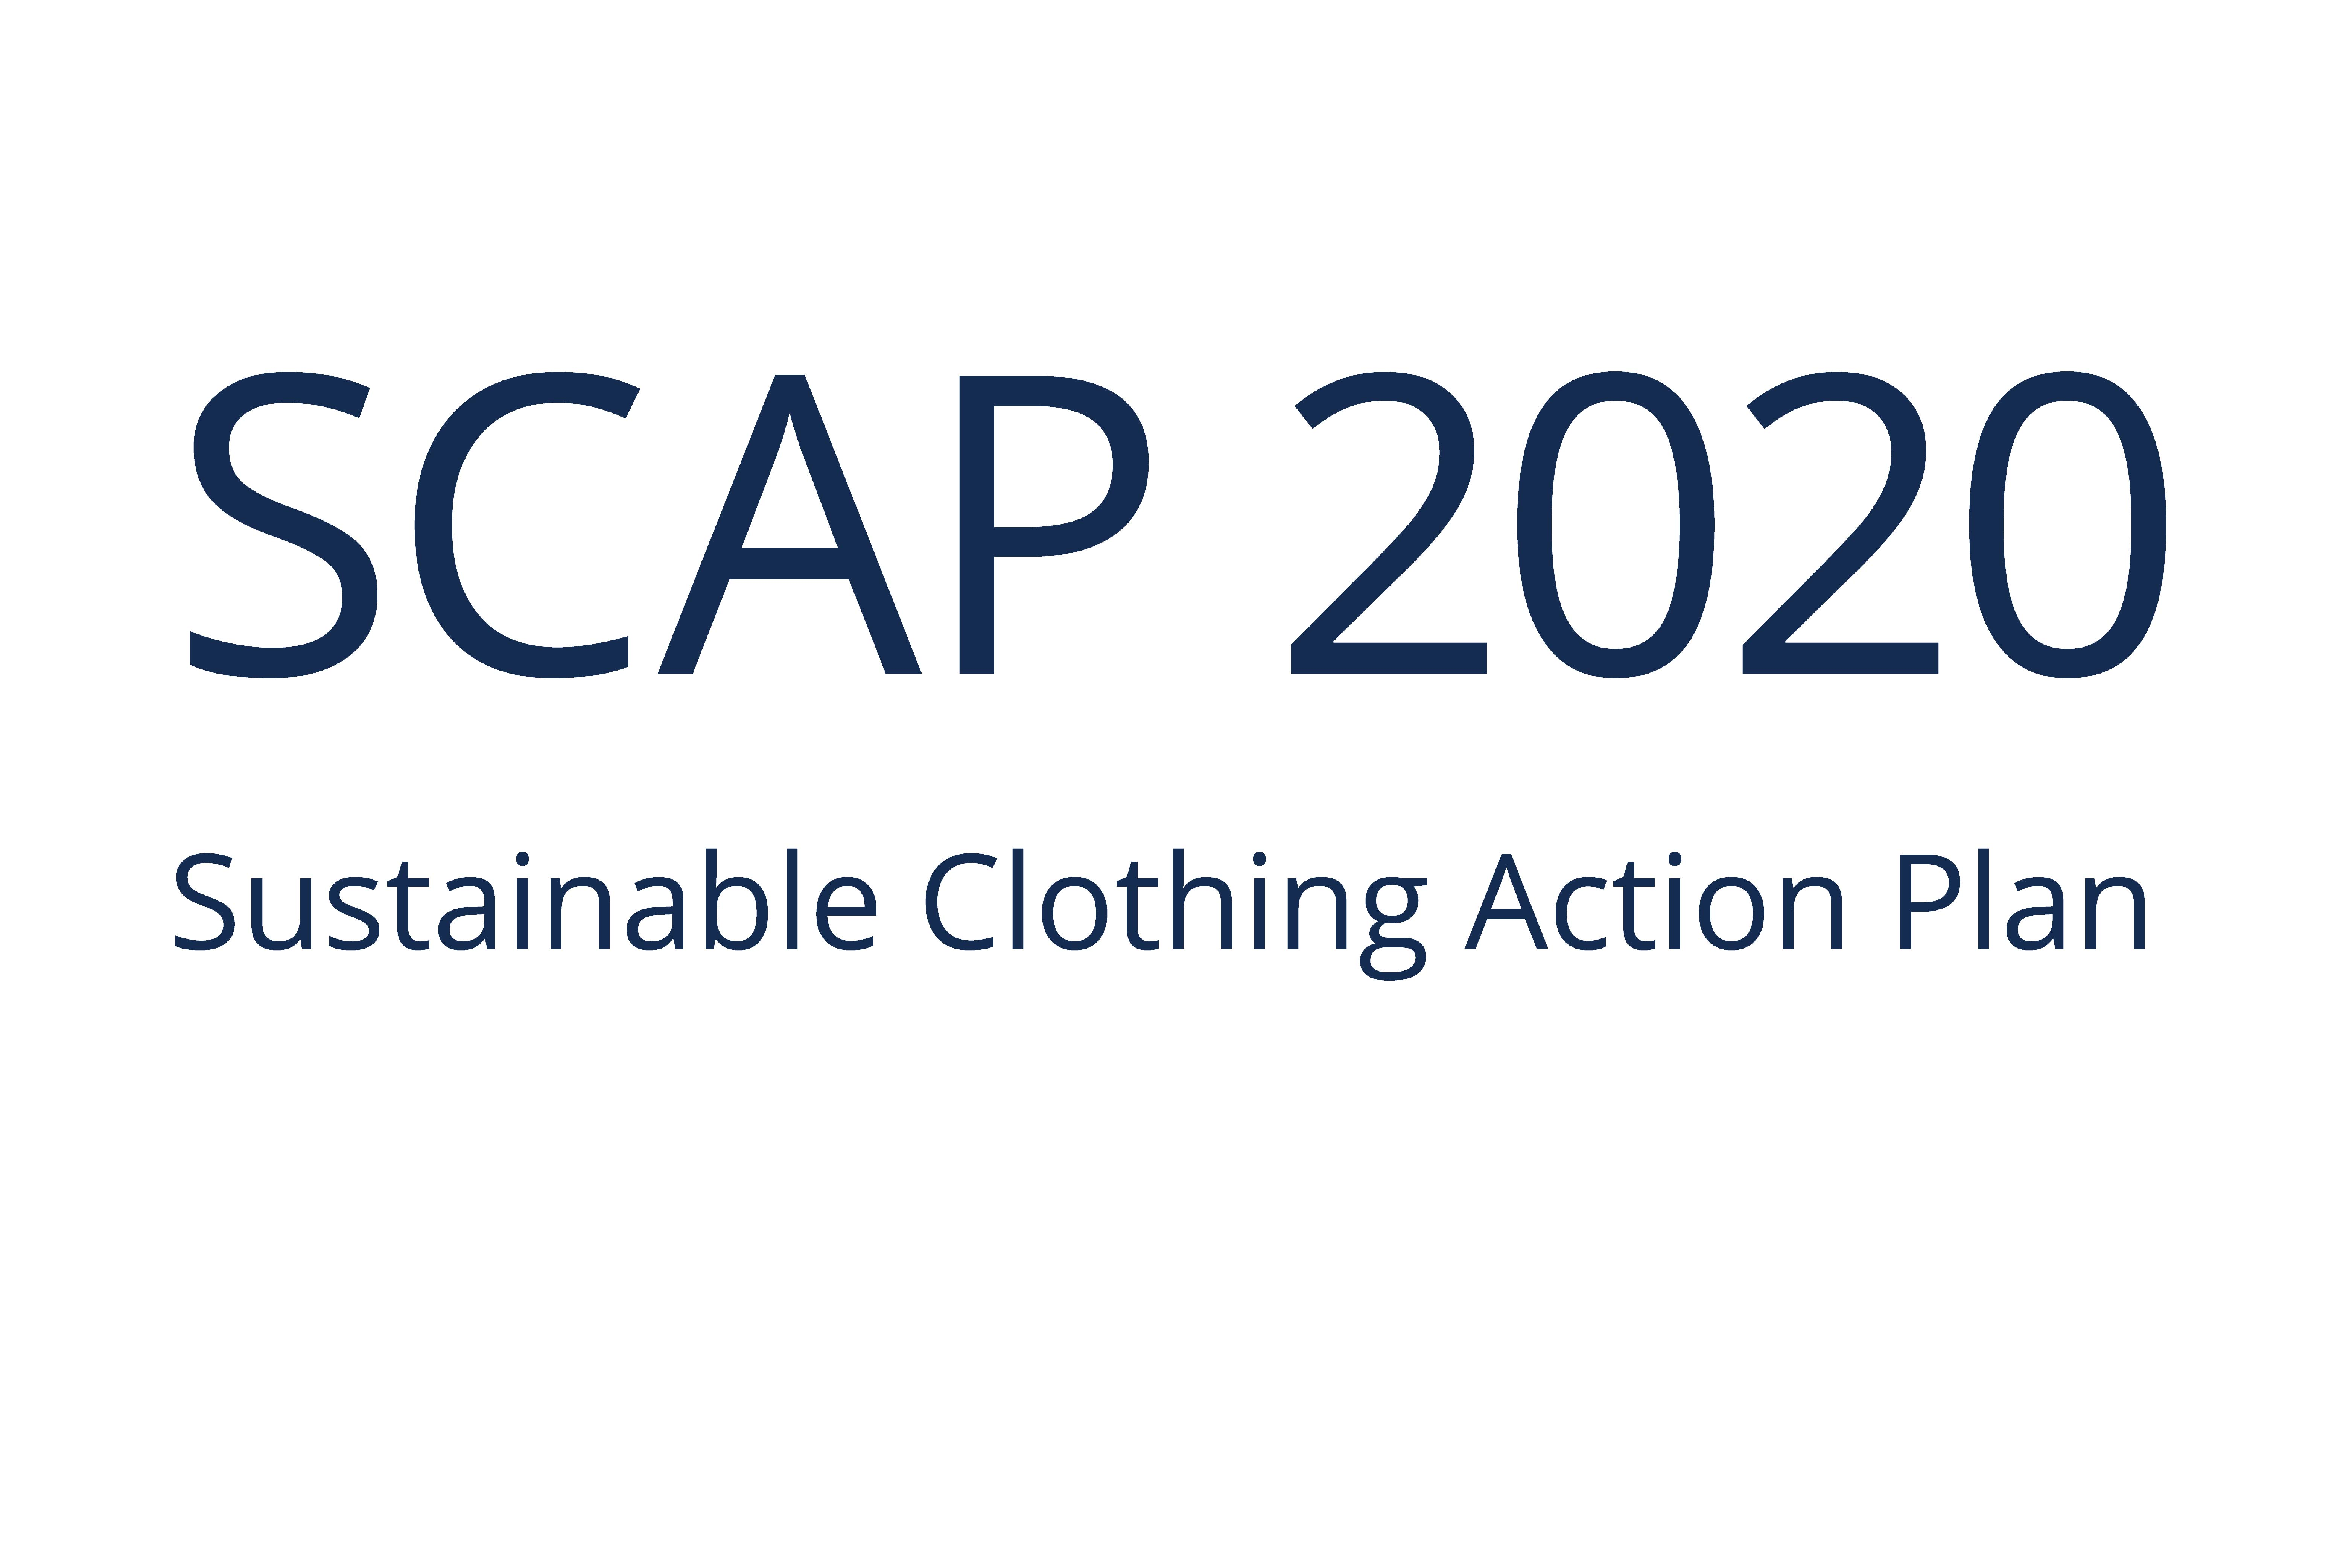 NEWLIFE SIGNS UP TO SUSTAINABLE CLOTHING ACTION PLAN